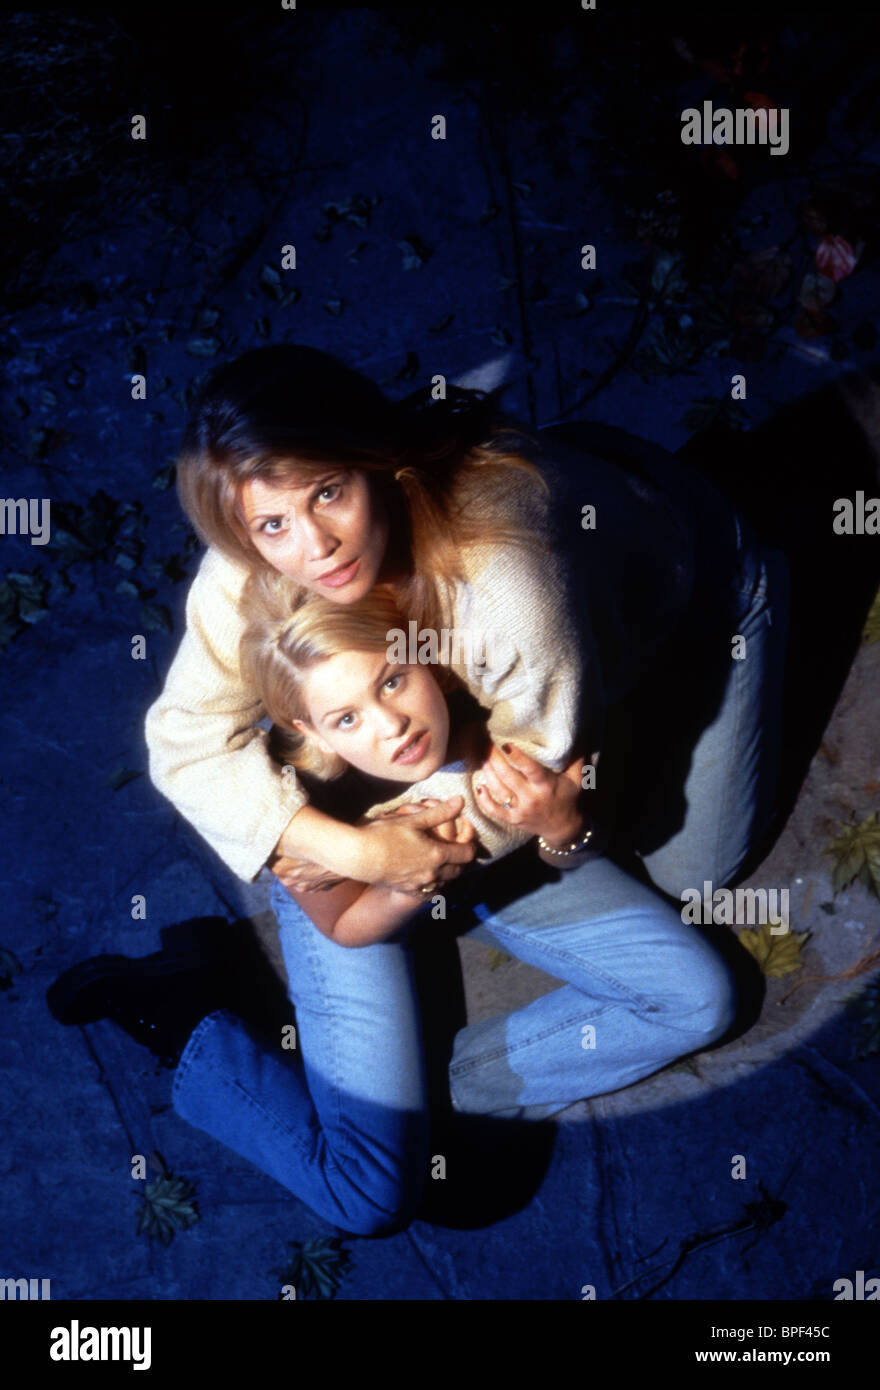 CANDACE CAMERON, MARKIE POST, VISITORS OF THE NIGHT, 1995 - Stock Image